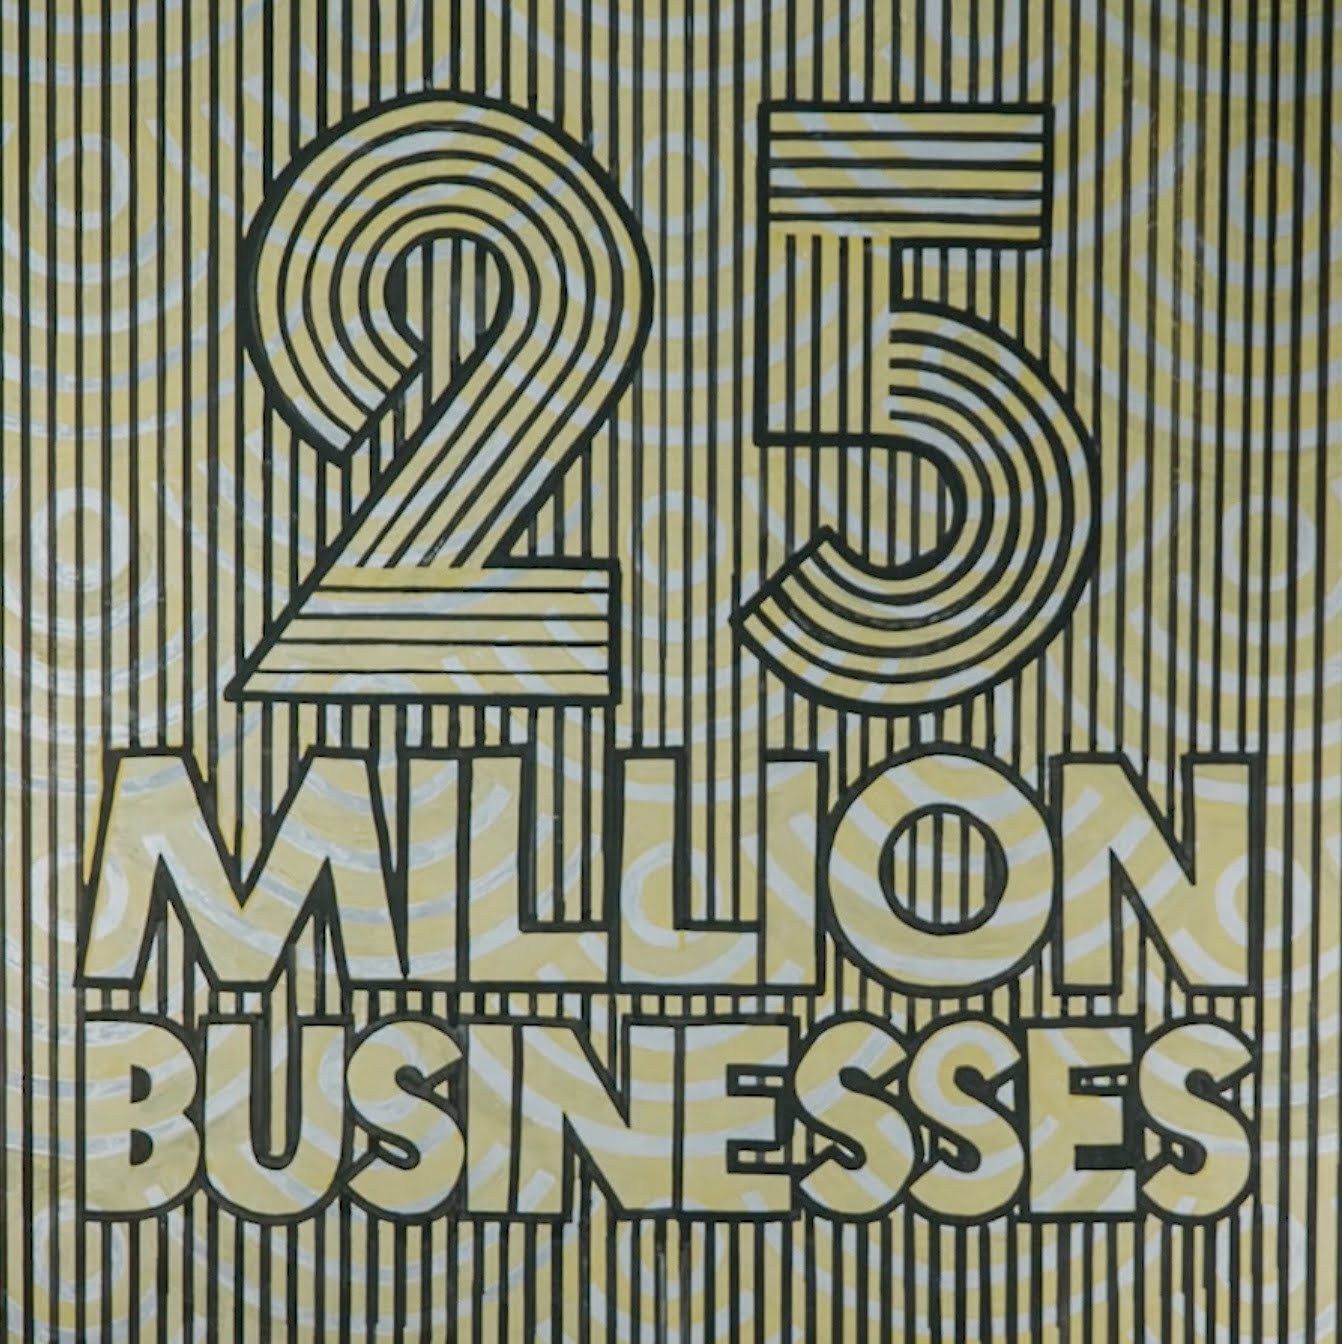 Instagram Reaches 25 Million Active Business Profiles, Shares New Business Tips